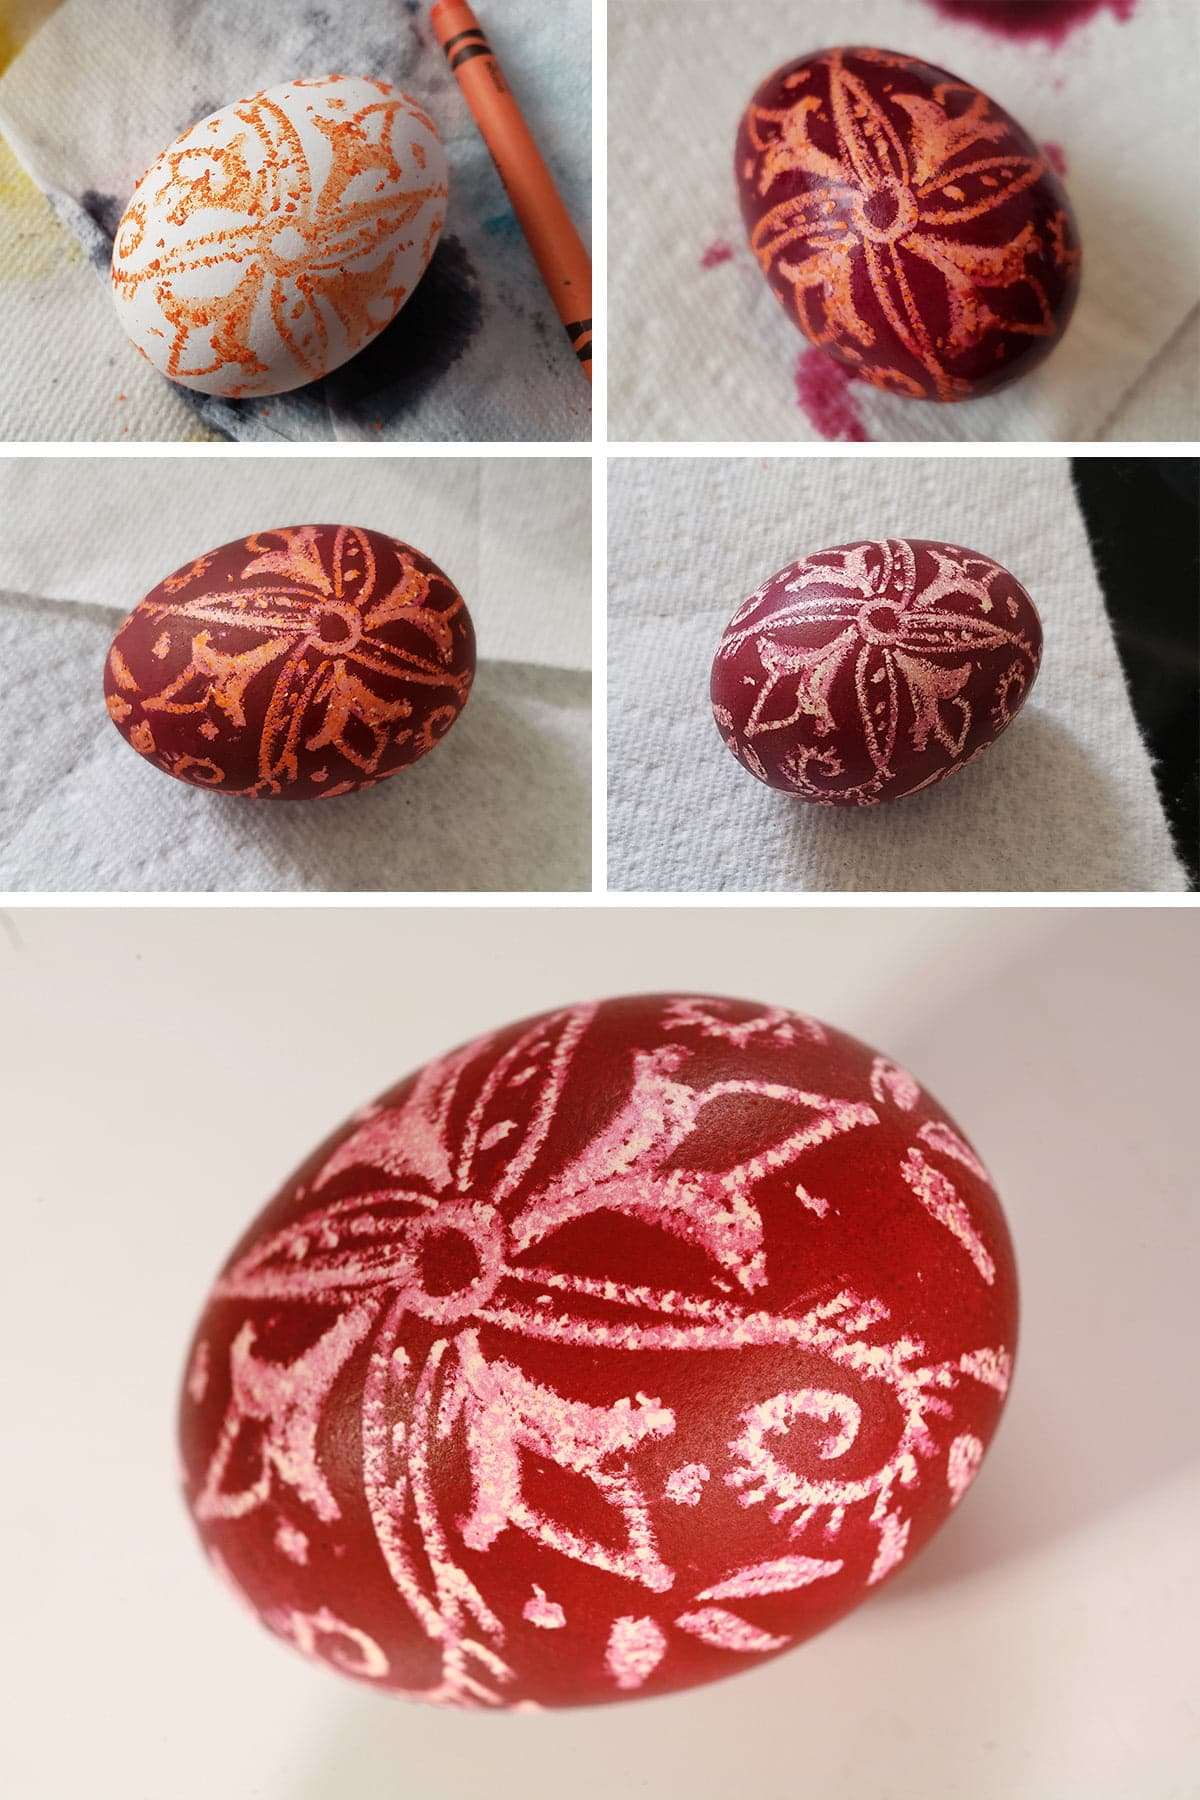 A 5 part compilation image showing a pysanky egg progression from a white egg with orange swirl design on it, through to a completed Easter Egg that is a deep red colour with white wax resist design on it.